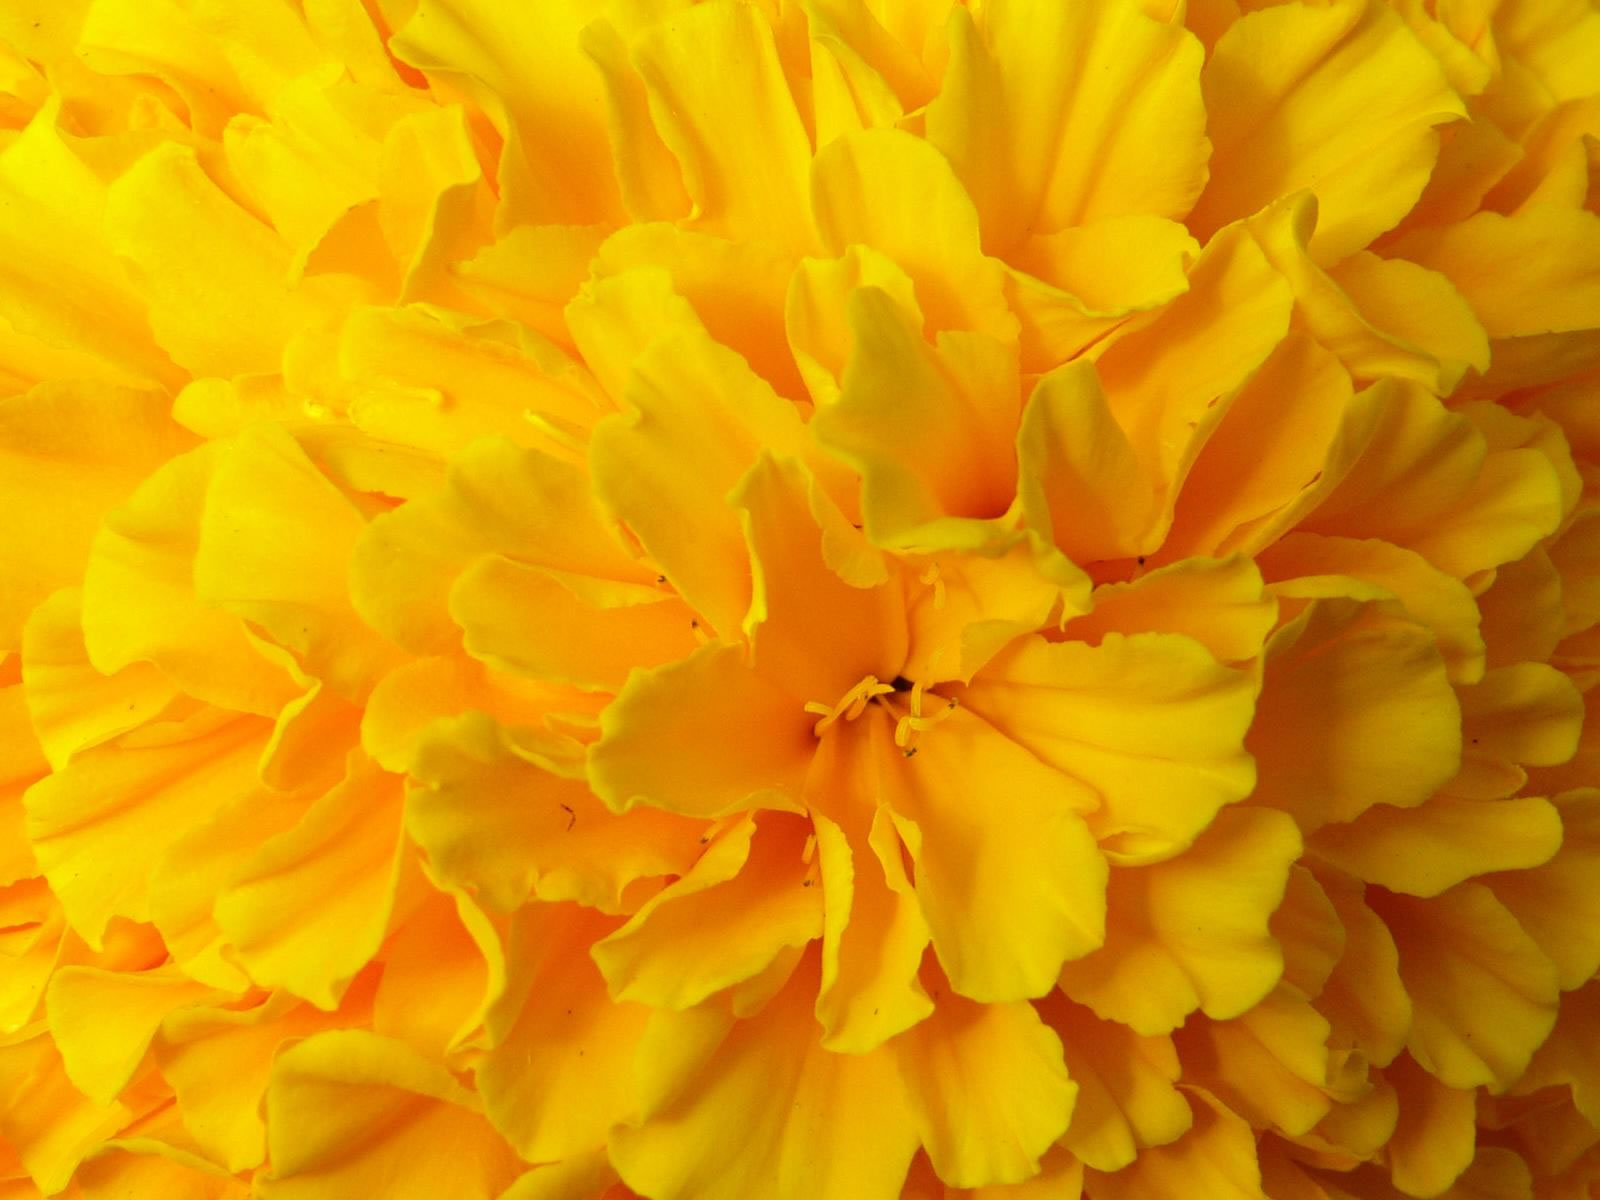 700 flowers wallpaper yellow 700 flowers wallpaper yellow wallpapers 1600x1200